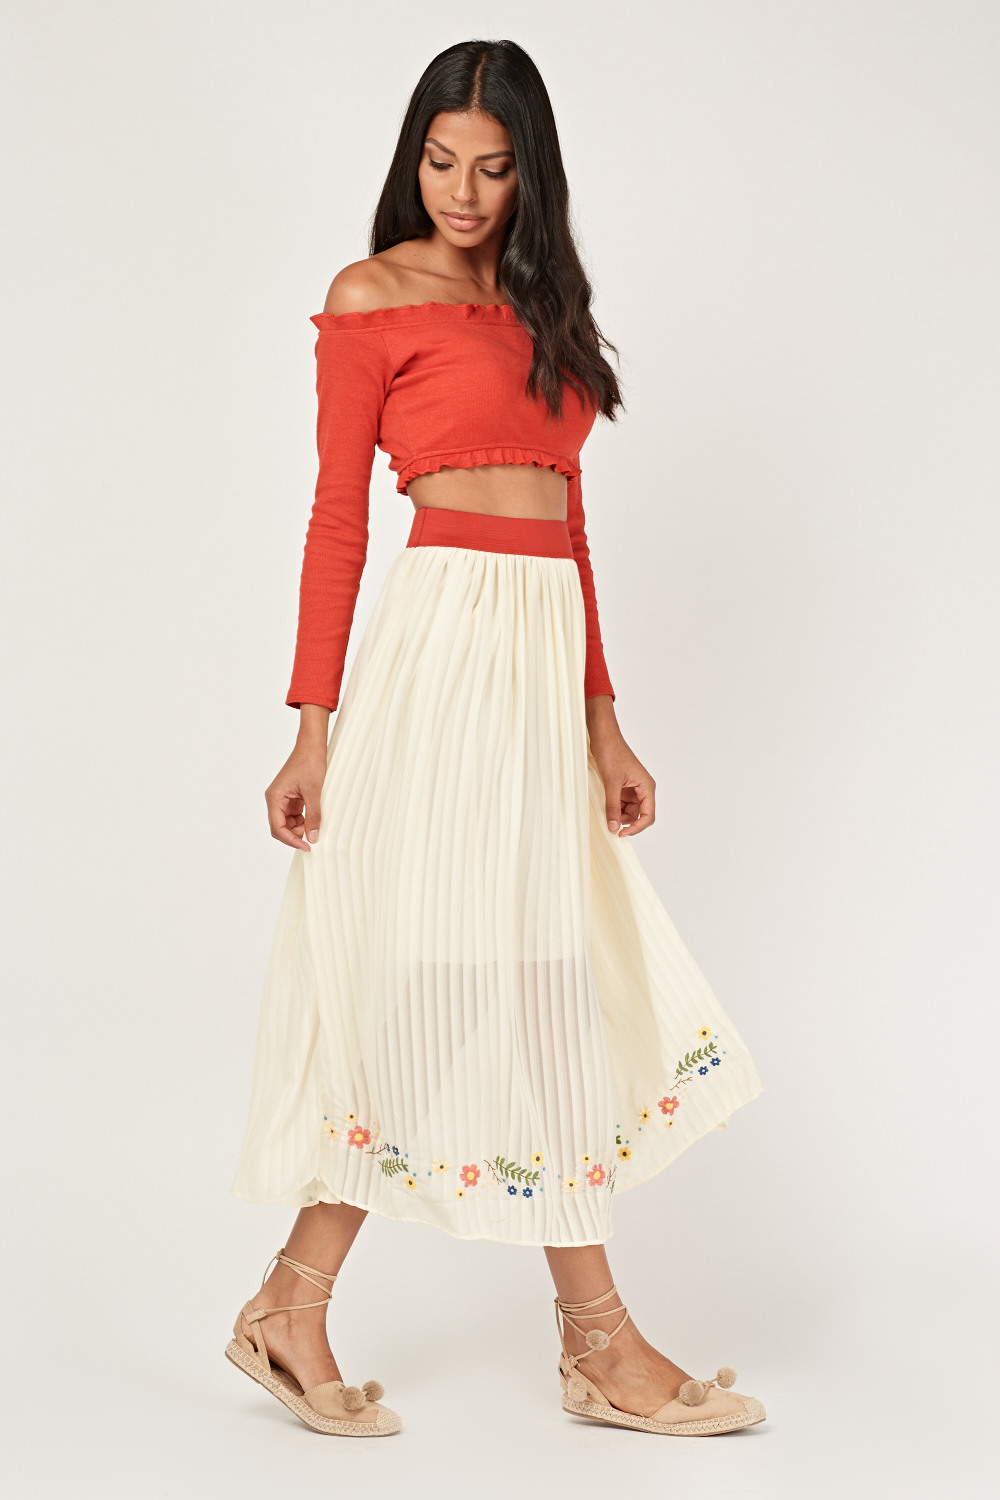 7a2667c56 Embroidered Trim Pleated Maxi Skirt - Just £5